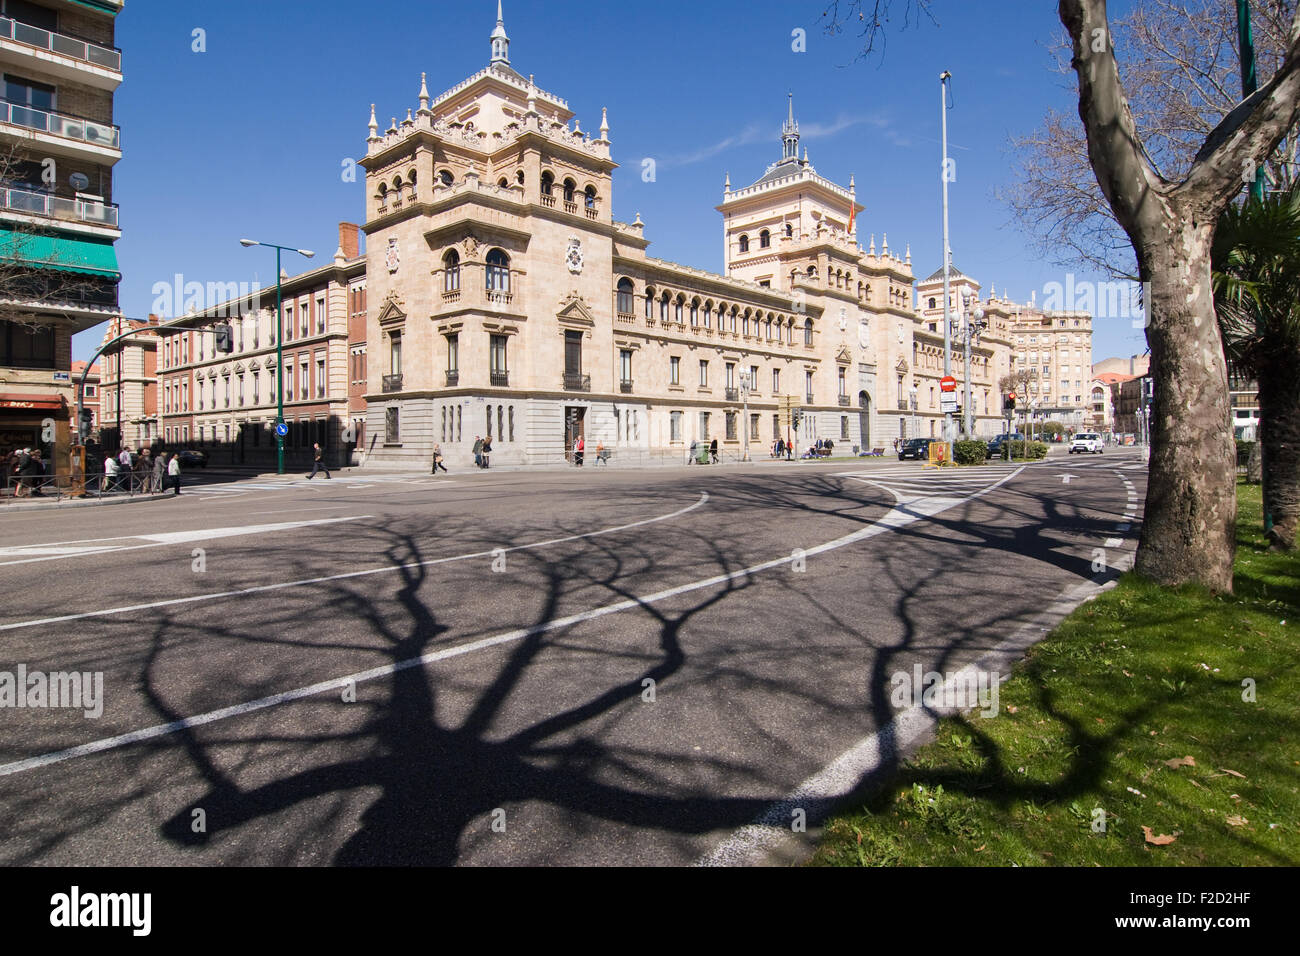 The Academia de Caballeria in Valladolid, Spain - Stock Image